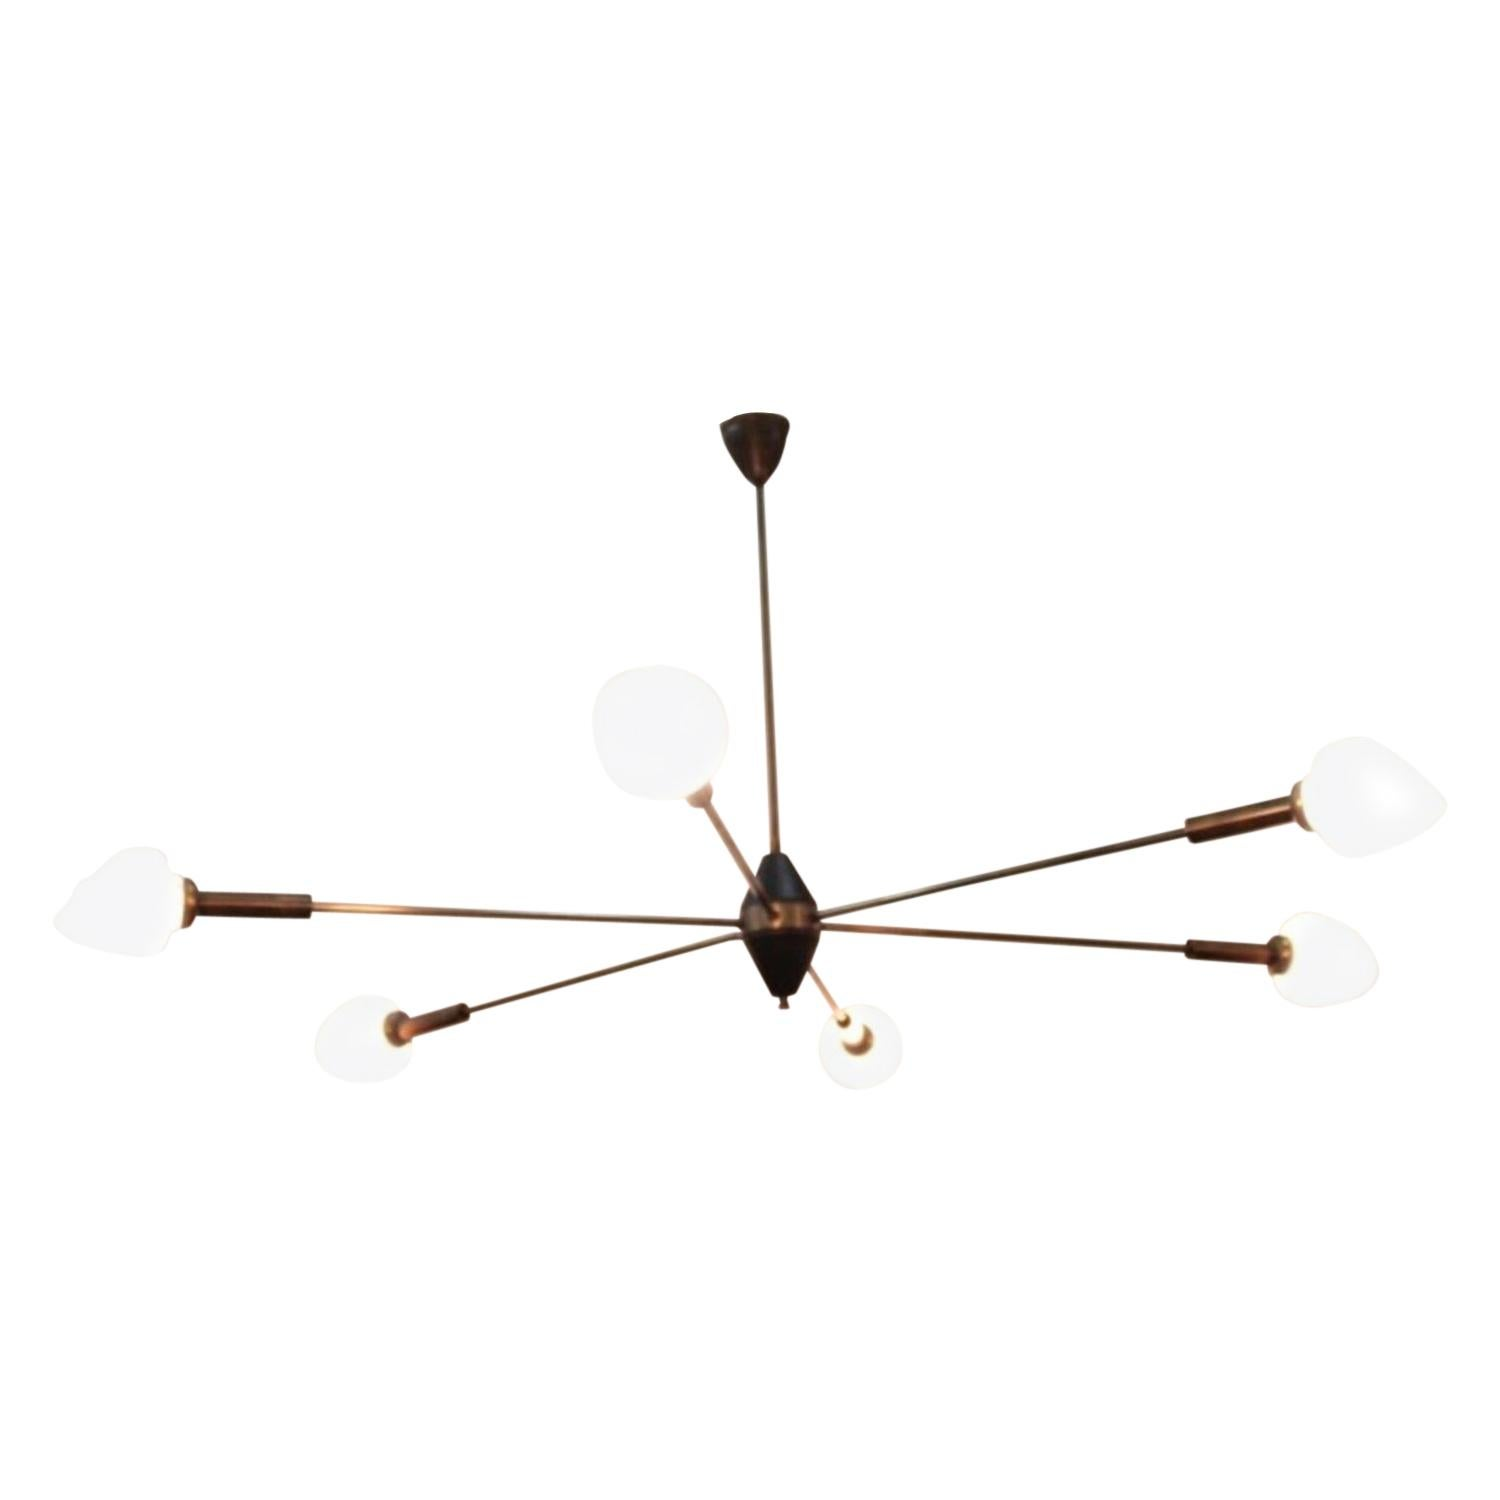 Big Midcentury Brass Ceiling Lamp in the Style of Arredoluce